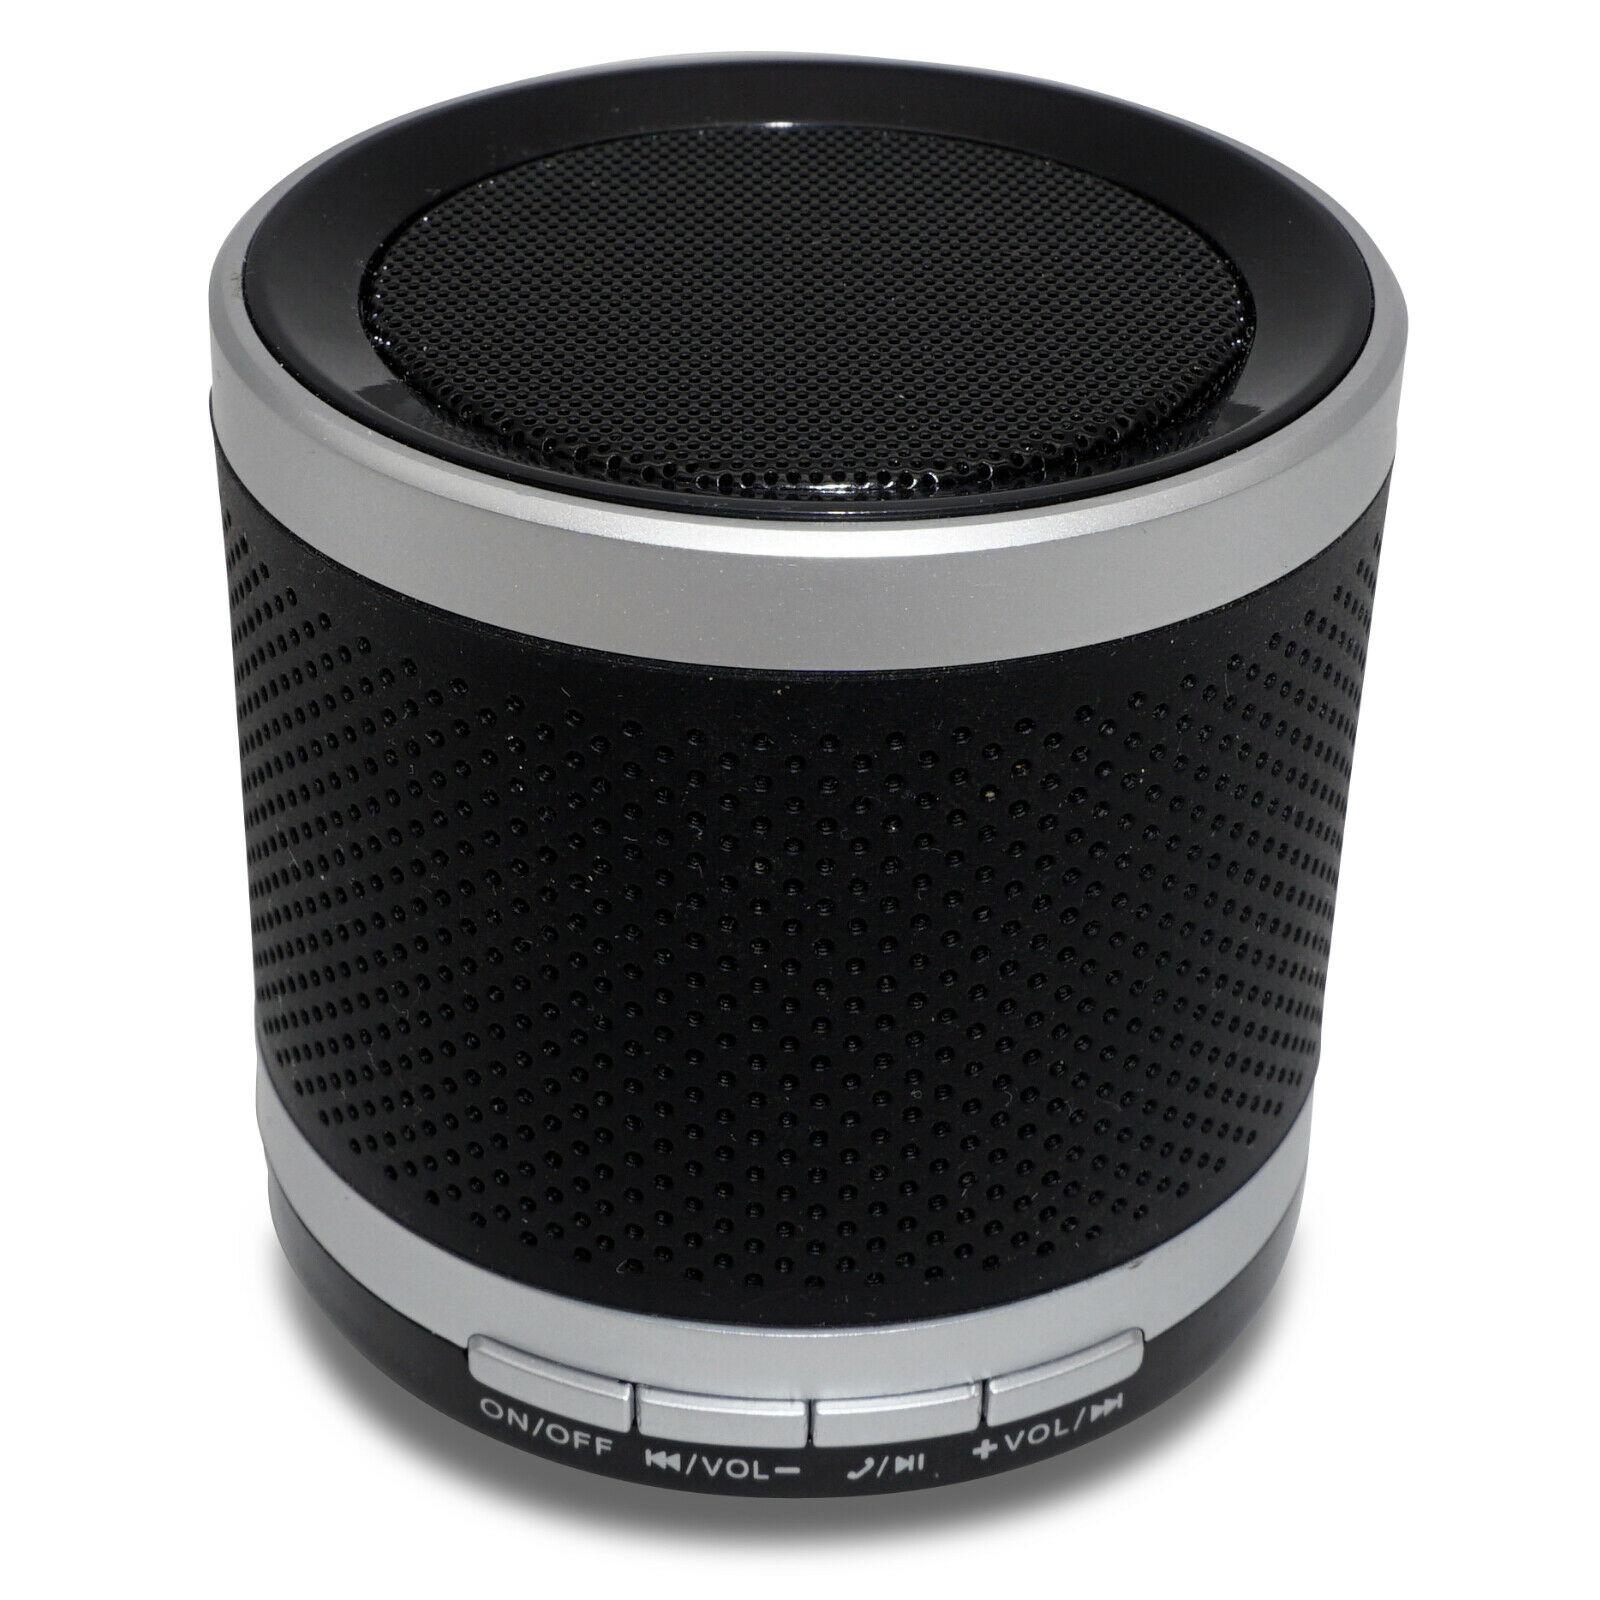 Mini Bluetooth Lautsprecher Speaker Tragbar Musikbox Soundstation Handy Mp3 Akku